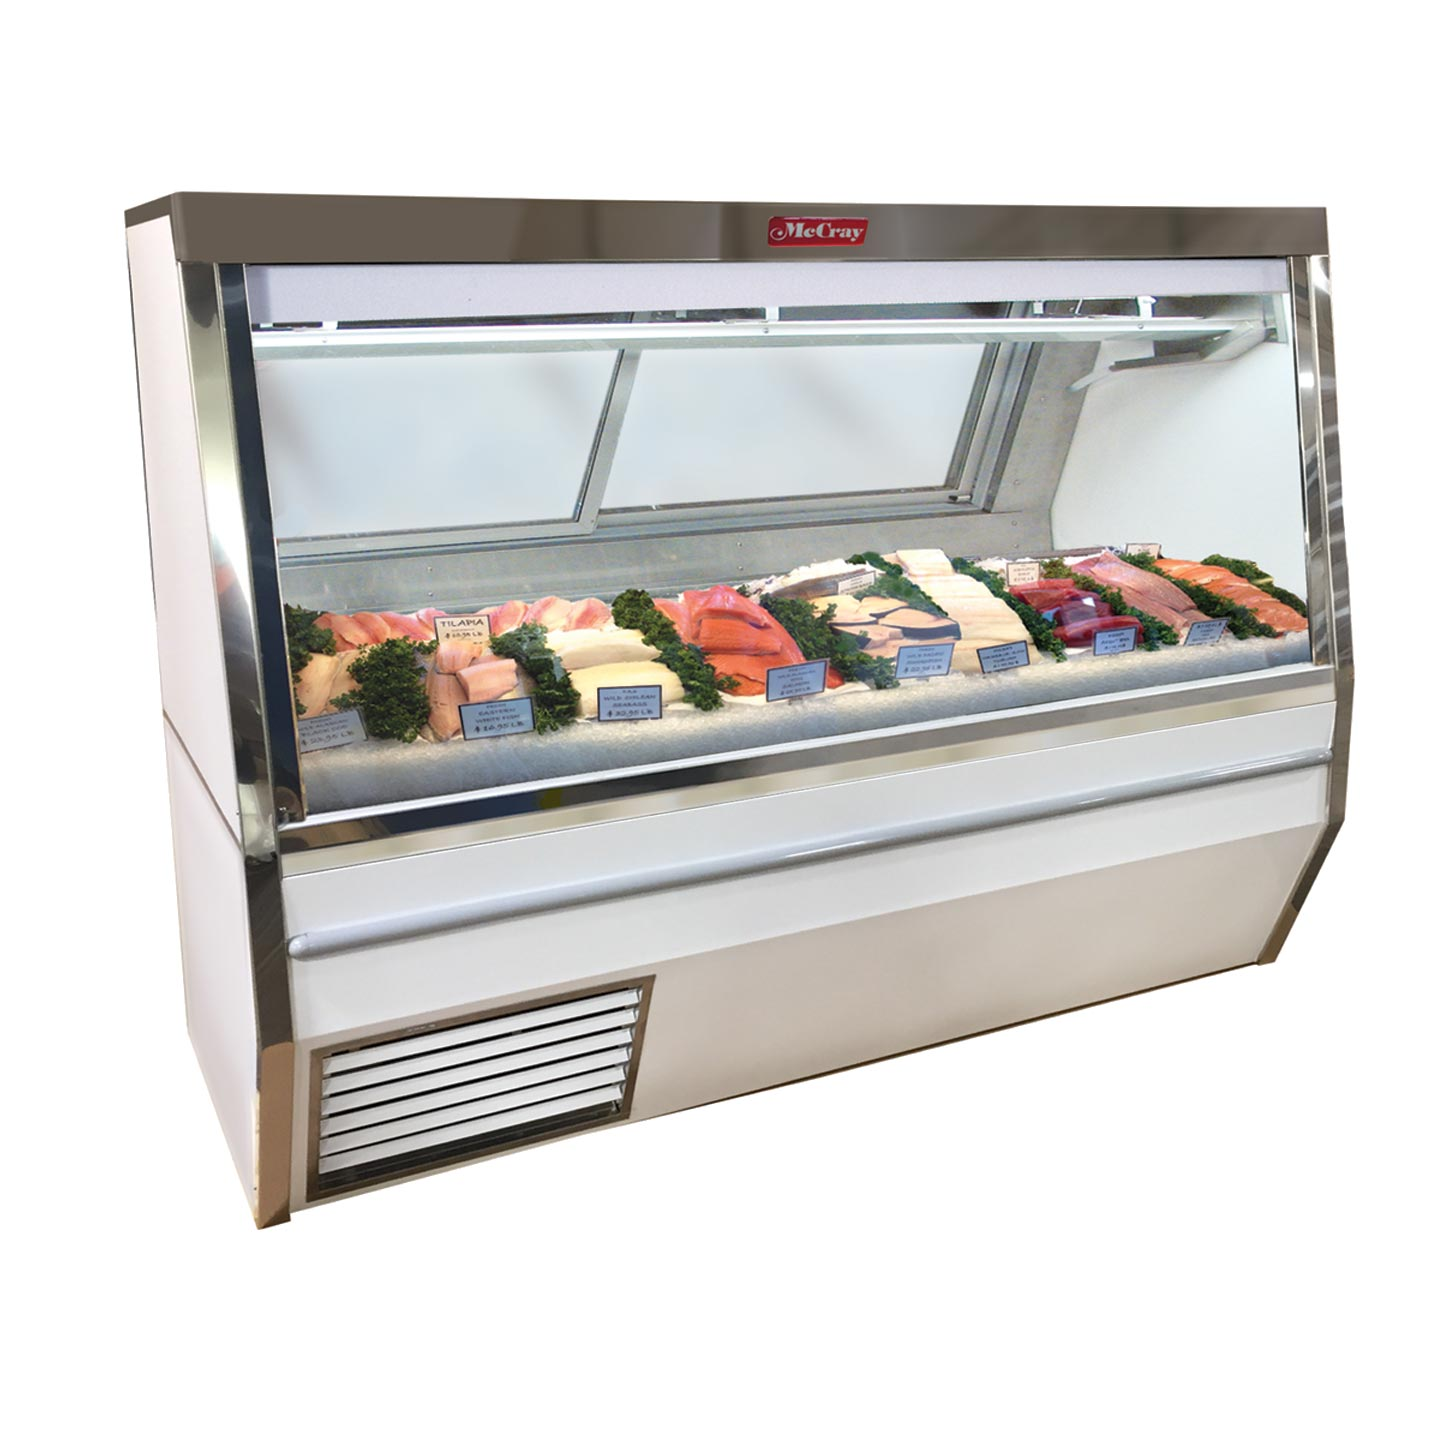 Howard-McCray R-CFS34N-6-BE-LED display case, deli seafood / poultry